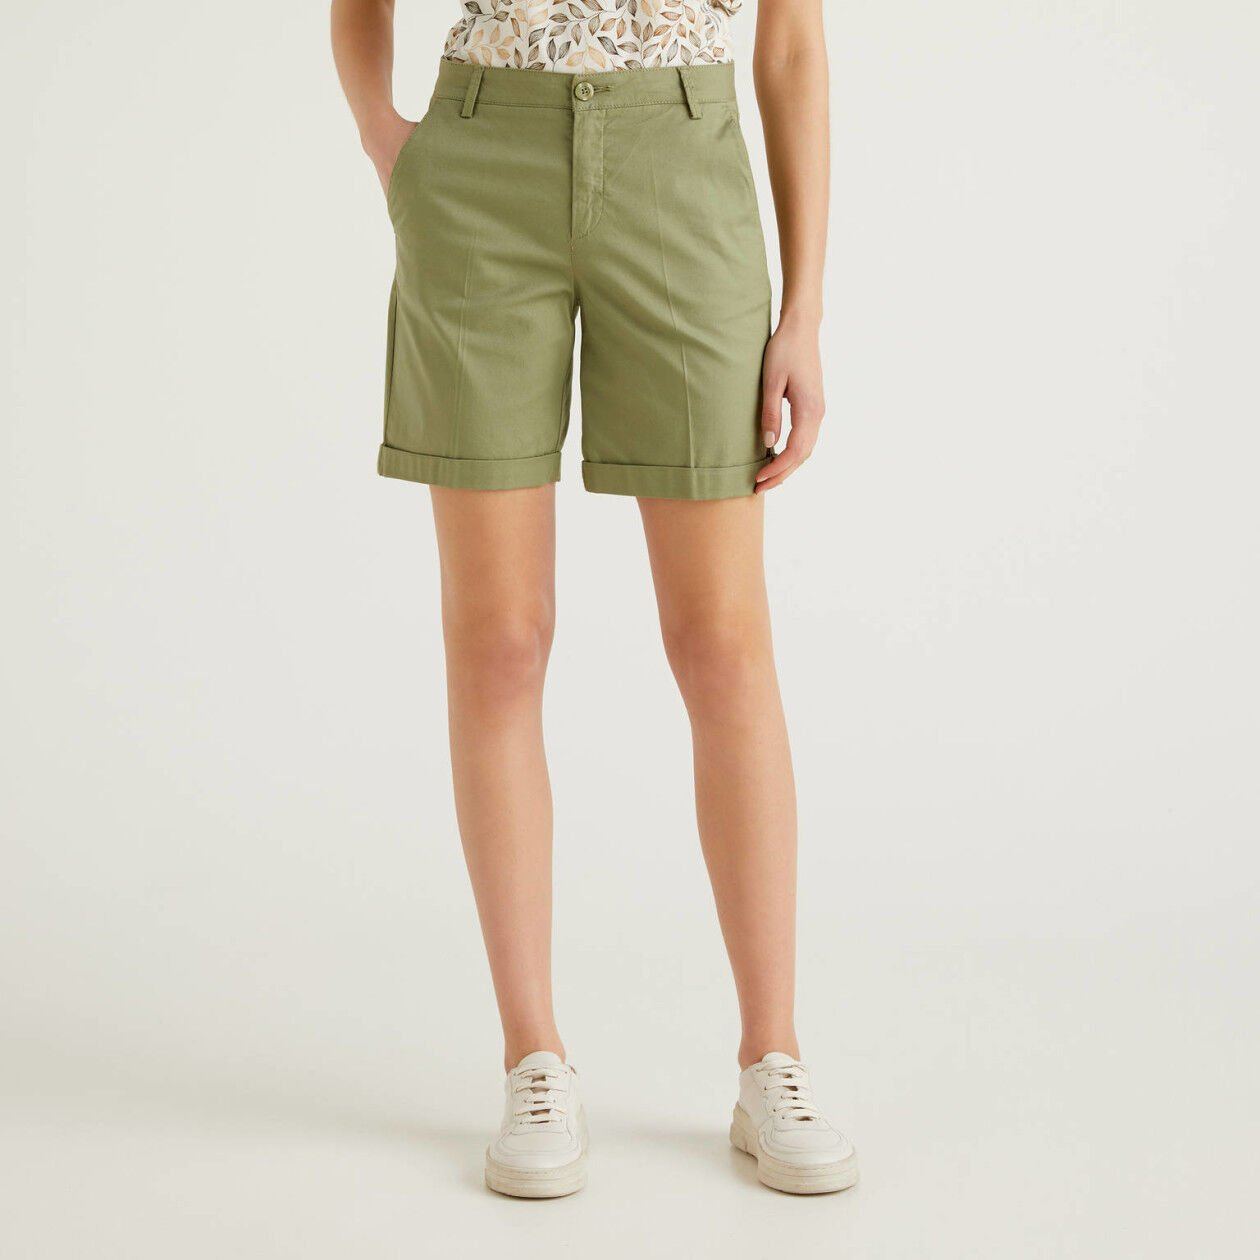 Bermudas in stretch cotton